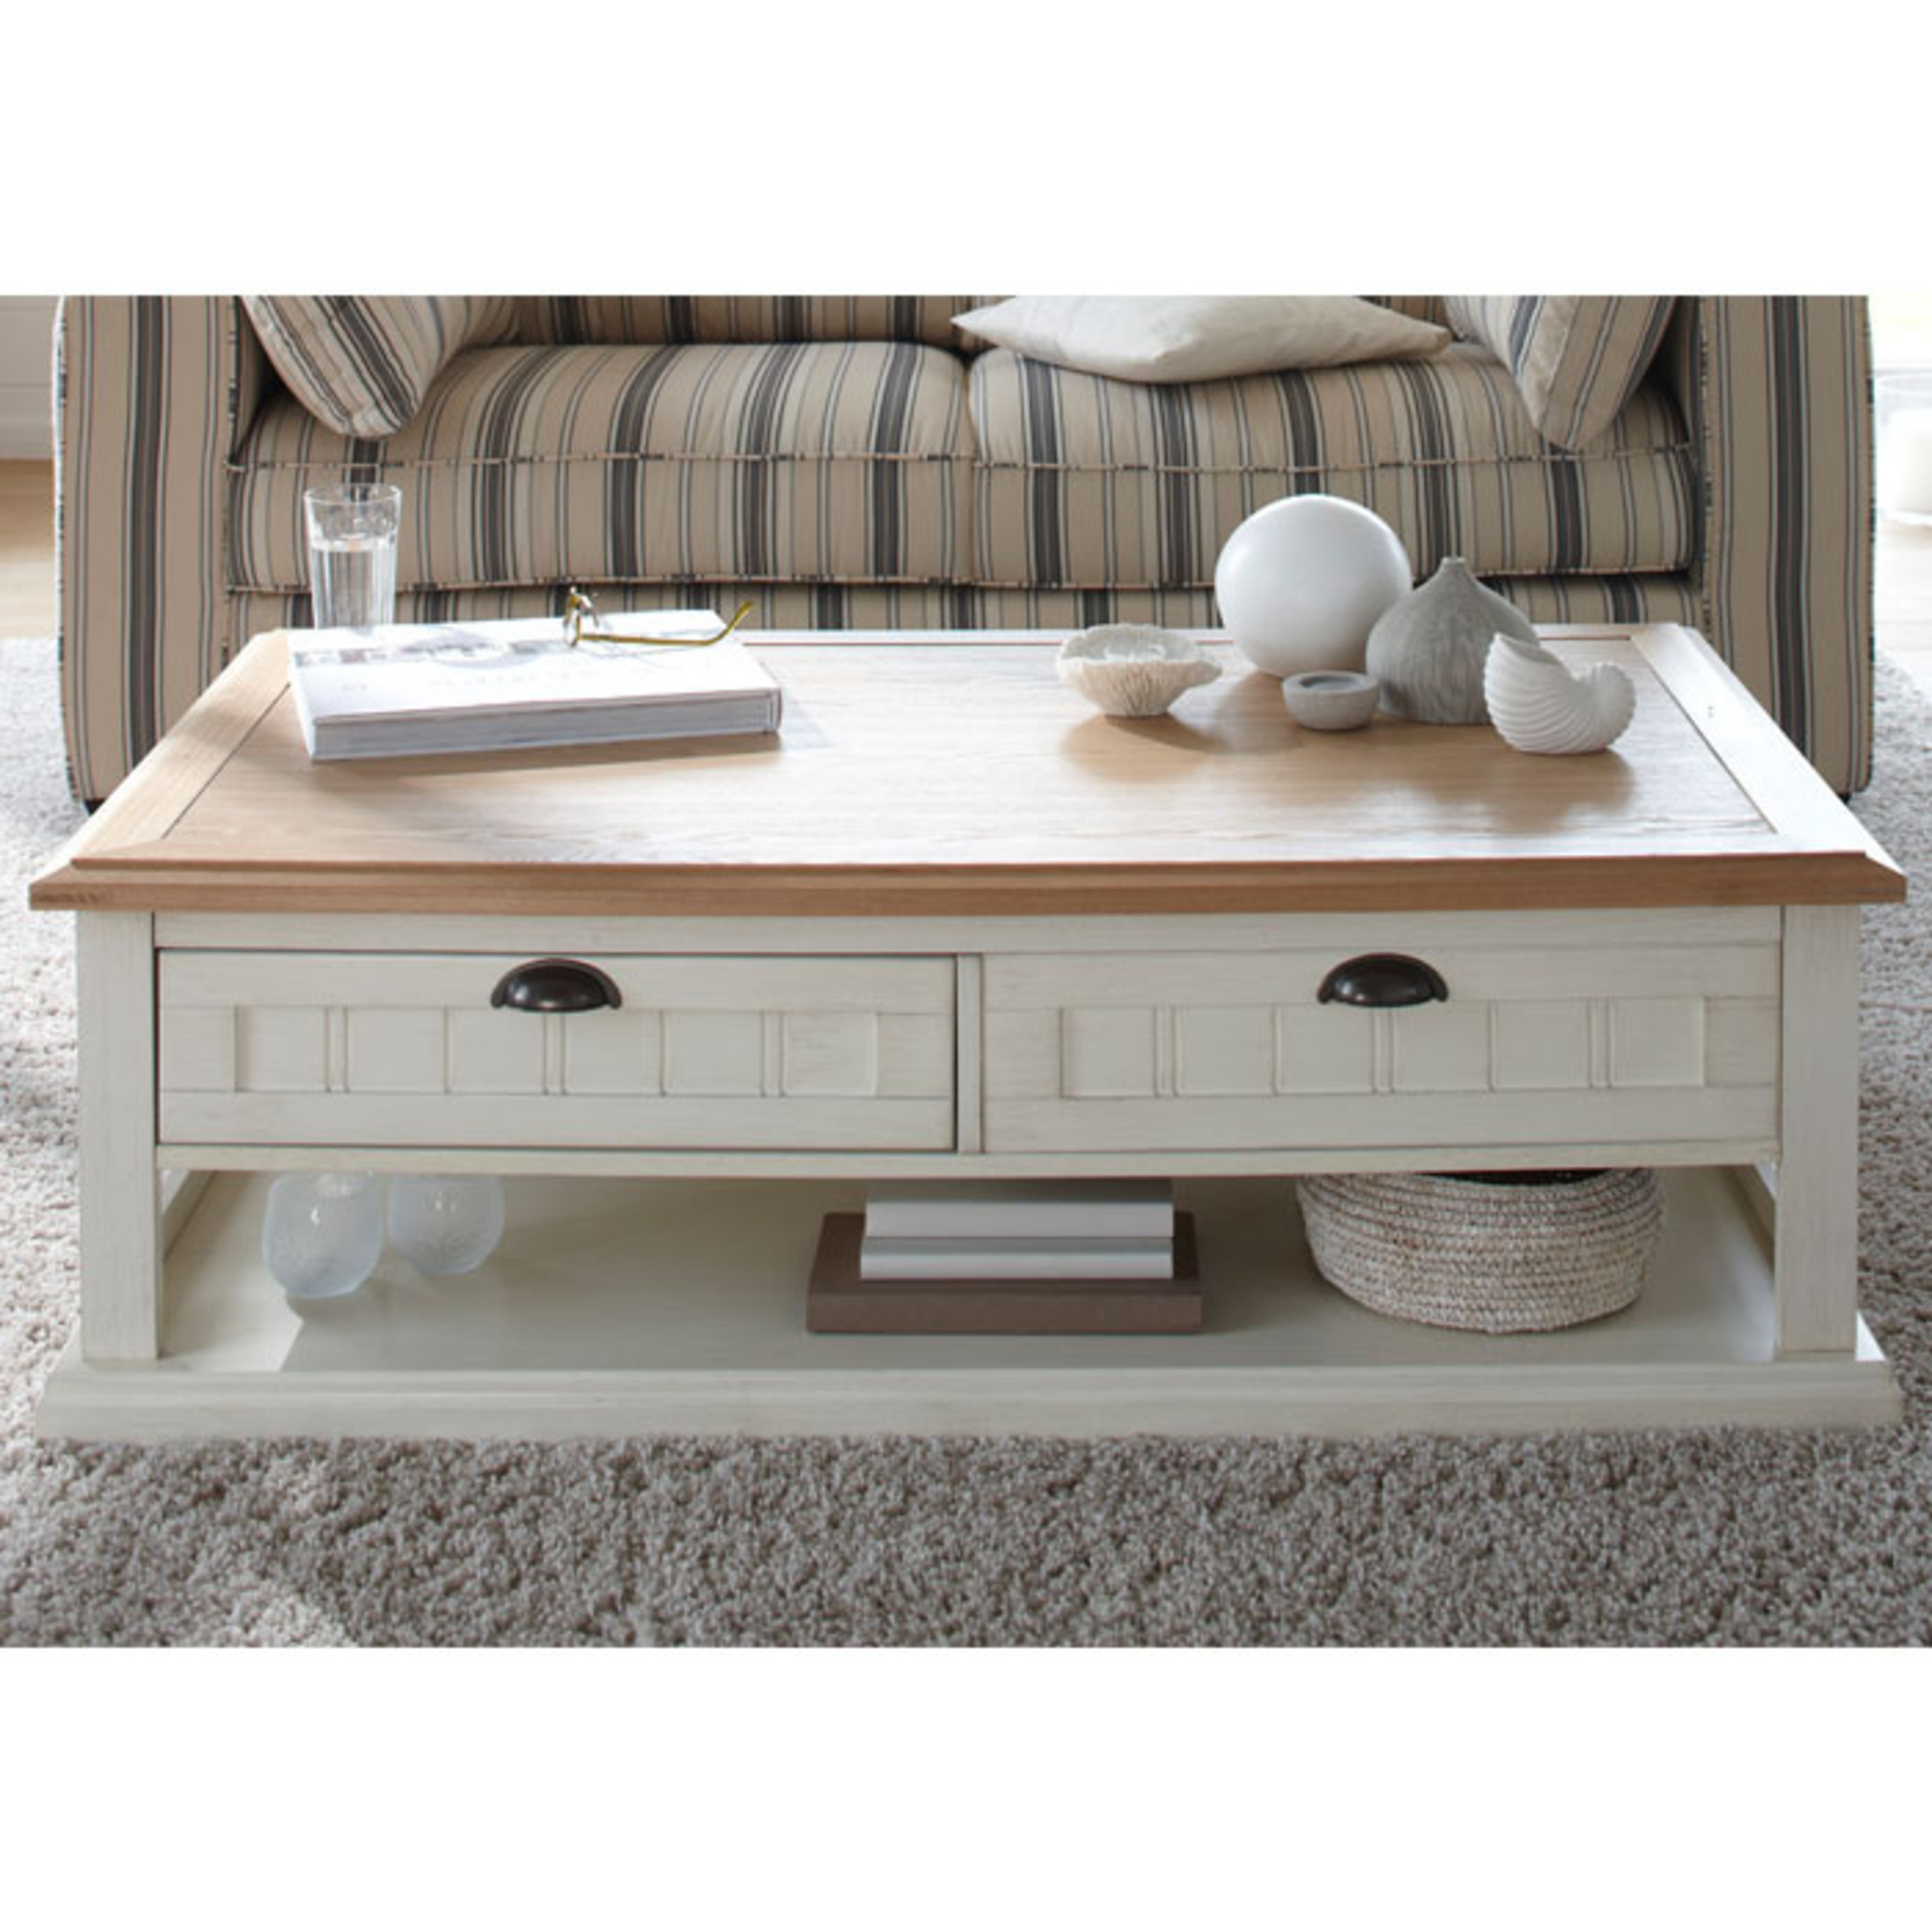 Table basse bois blanc vieilli table de lit - Table basse en bois blanc ...